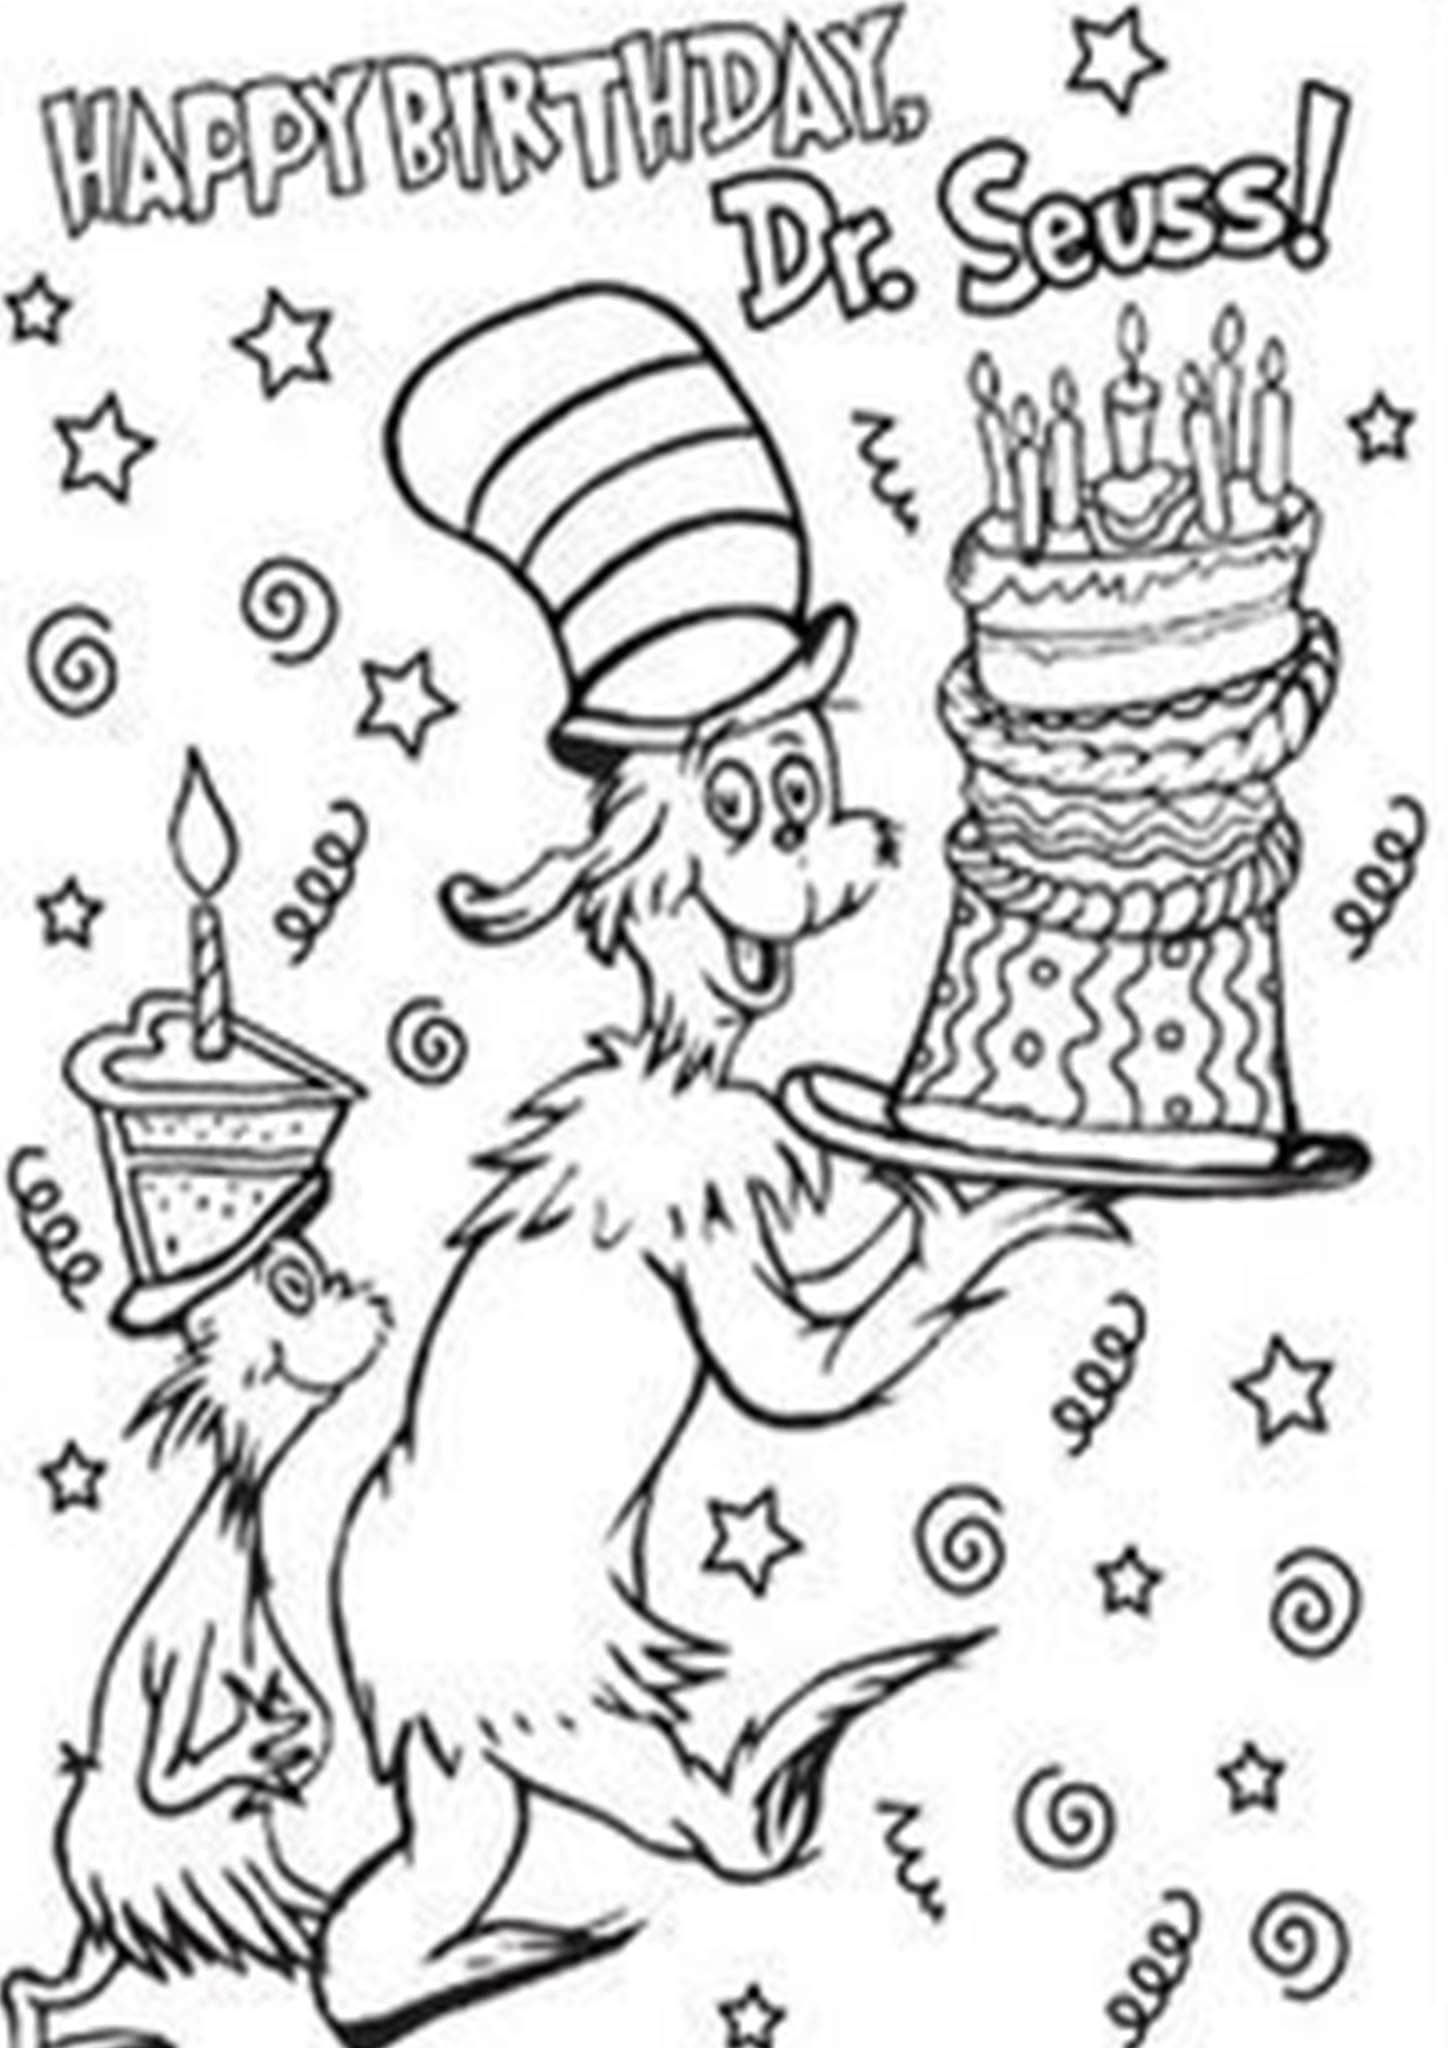 Free Easy To Print Cat In The Hat Coloring Pages Dr Seuss Activities Dr Seuss Coloring Pages Dr Seuss Classroom